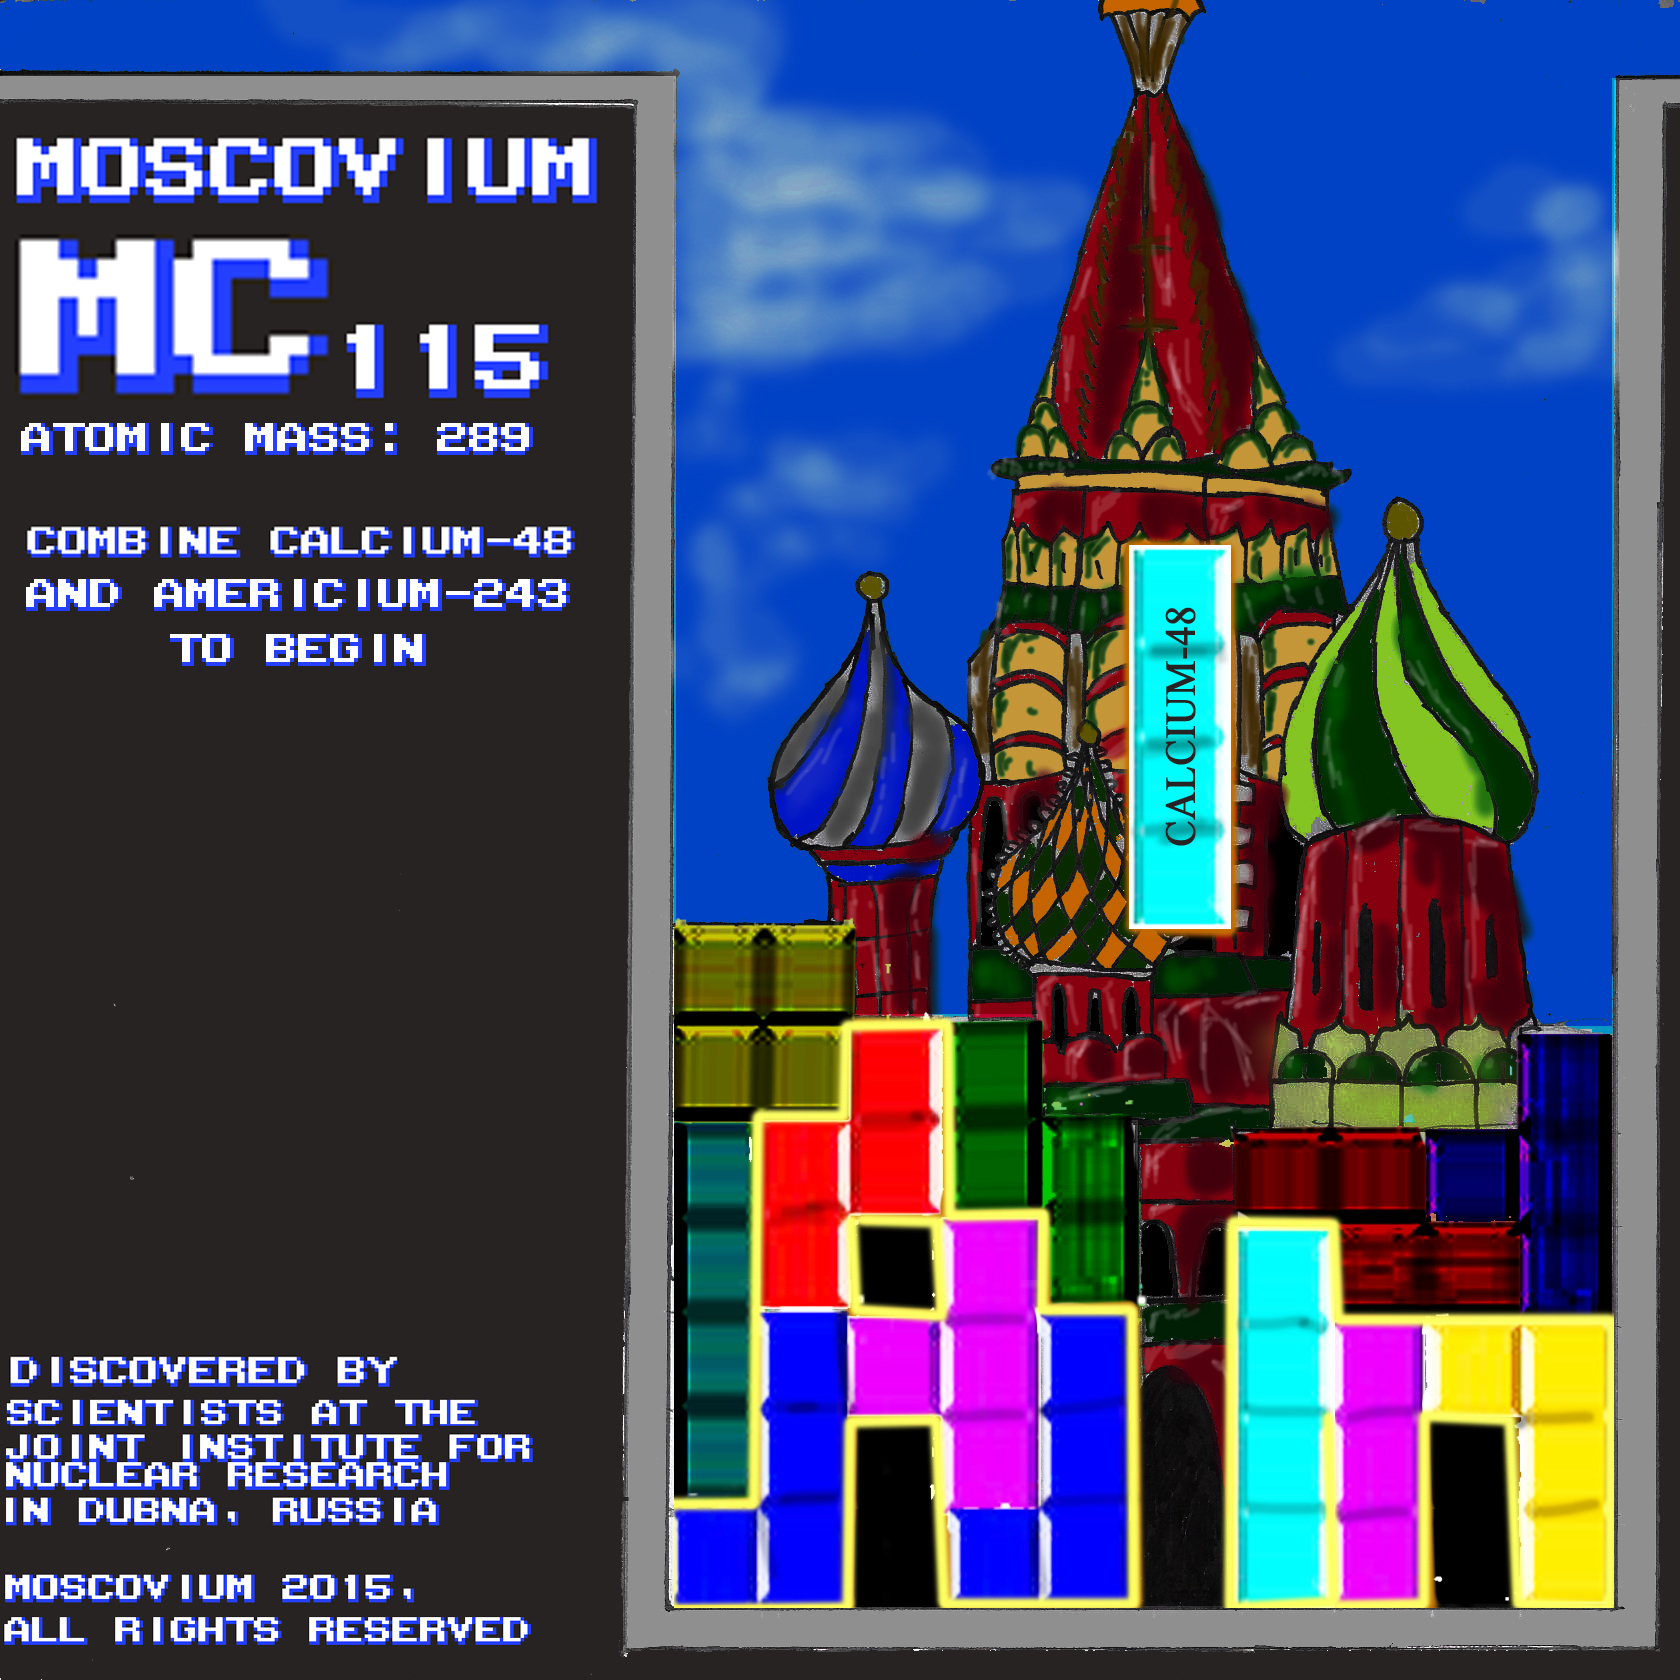 elemental tile of moscovium created digitally showing computer game Tetris in foreground and St. Basil's Cathedral in background.